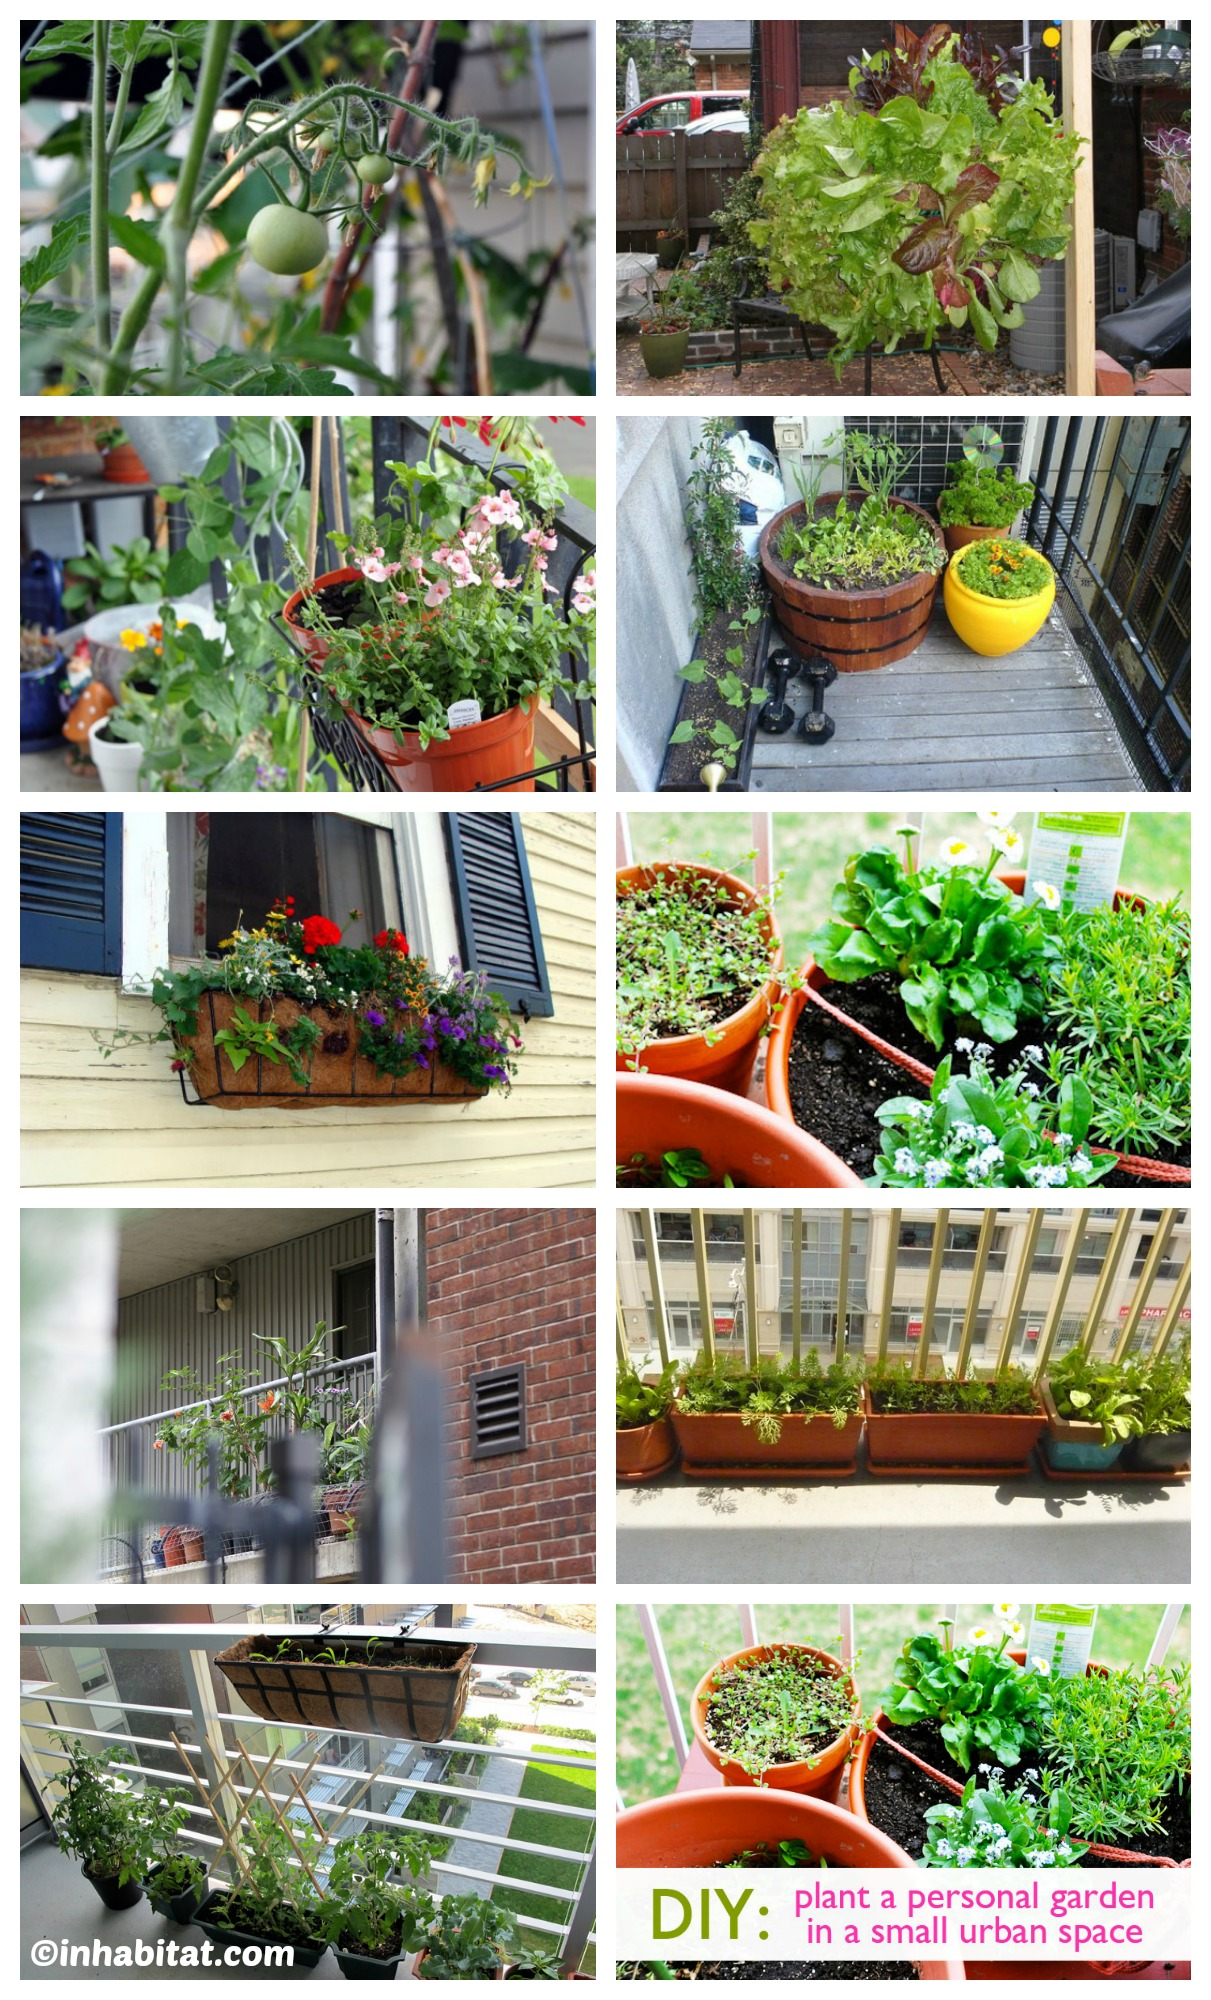 How to - Urban Garden Small Space